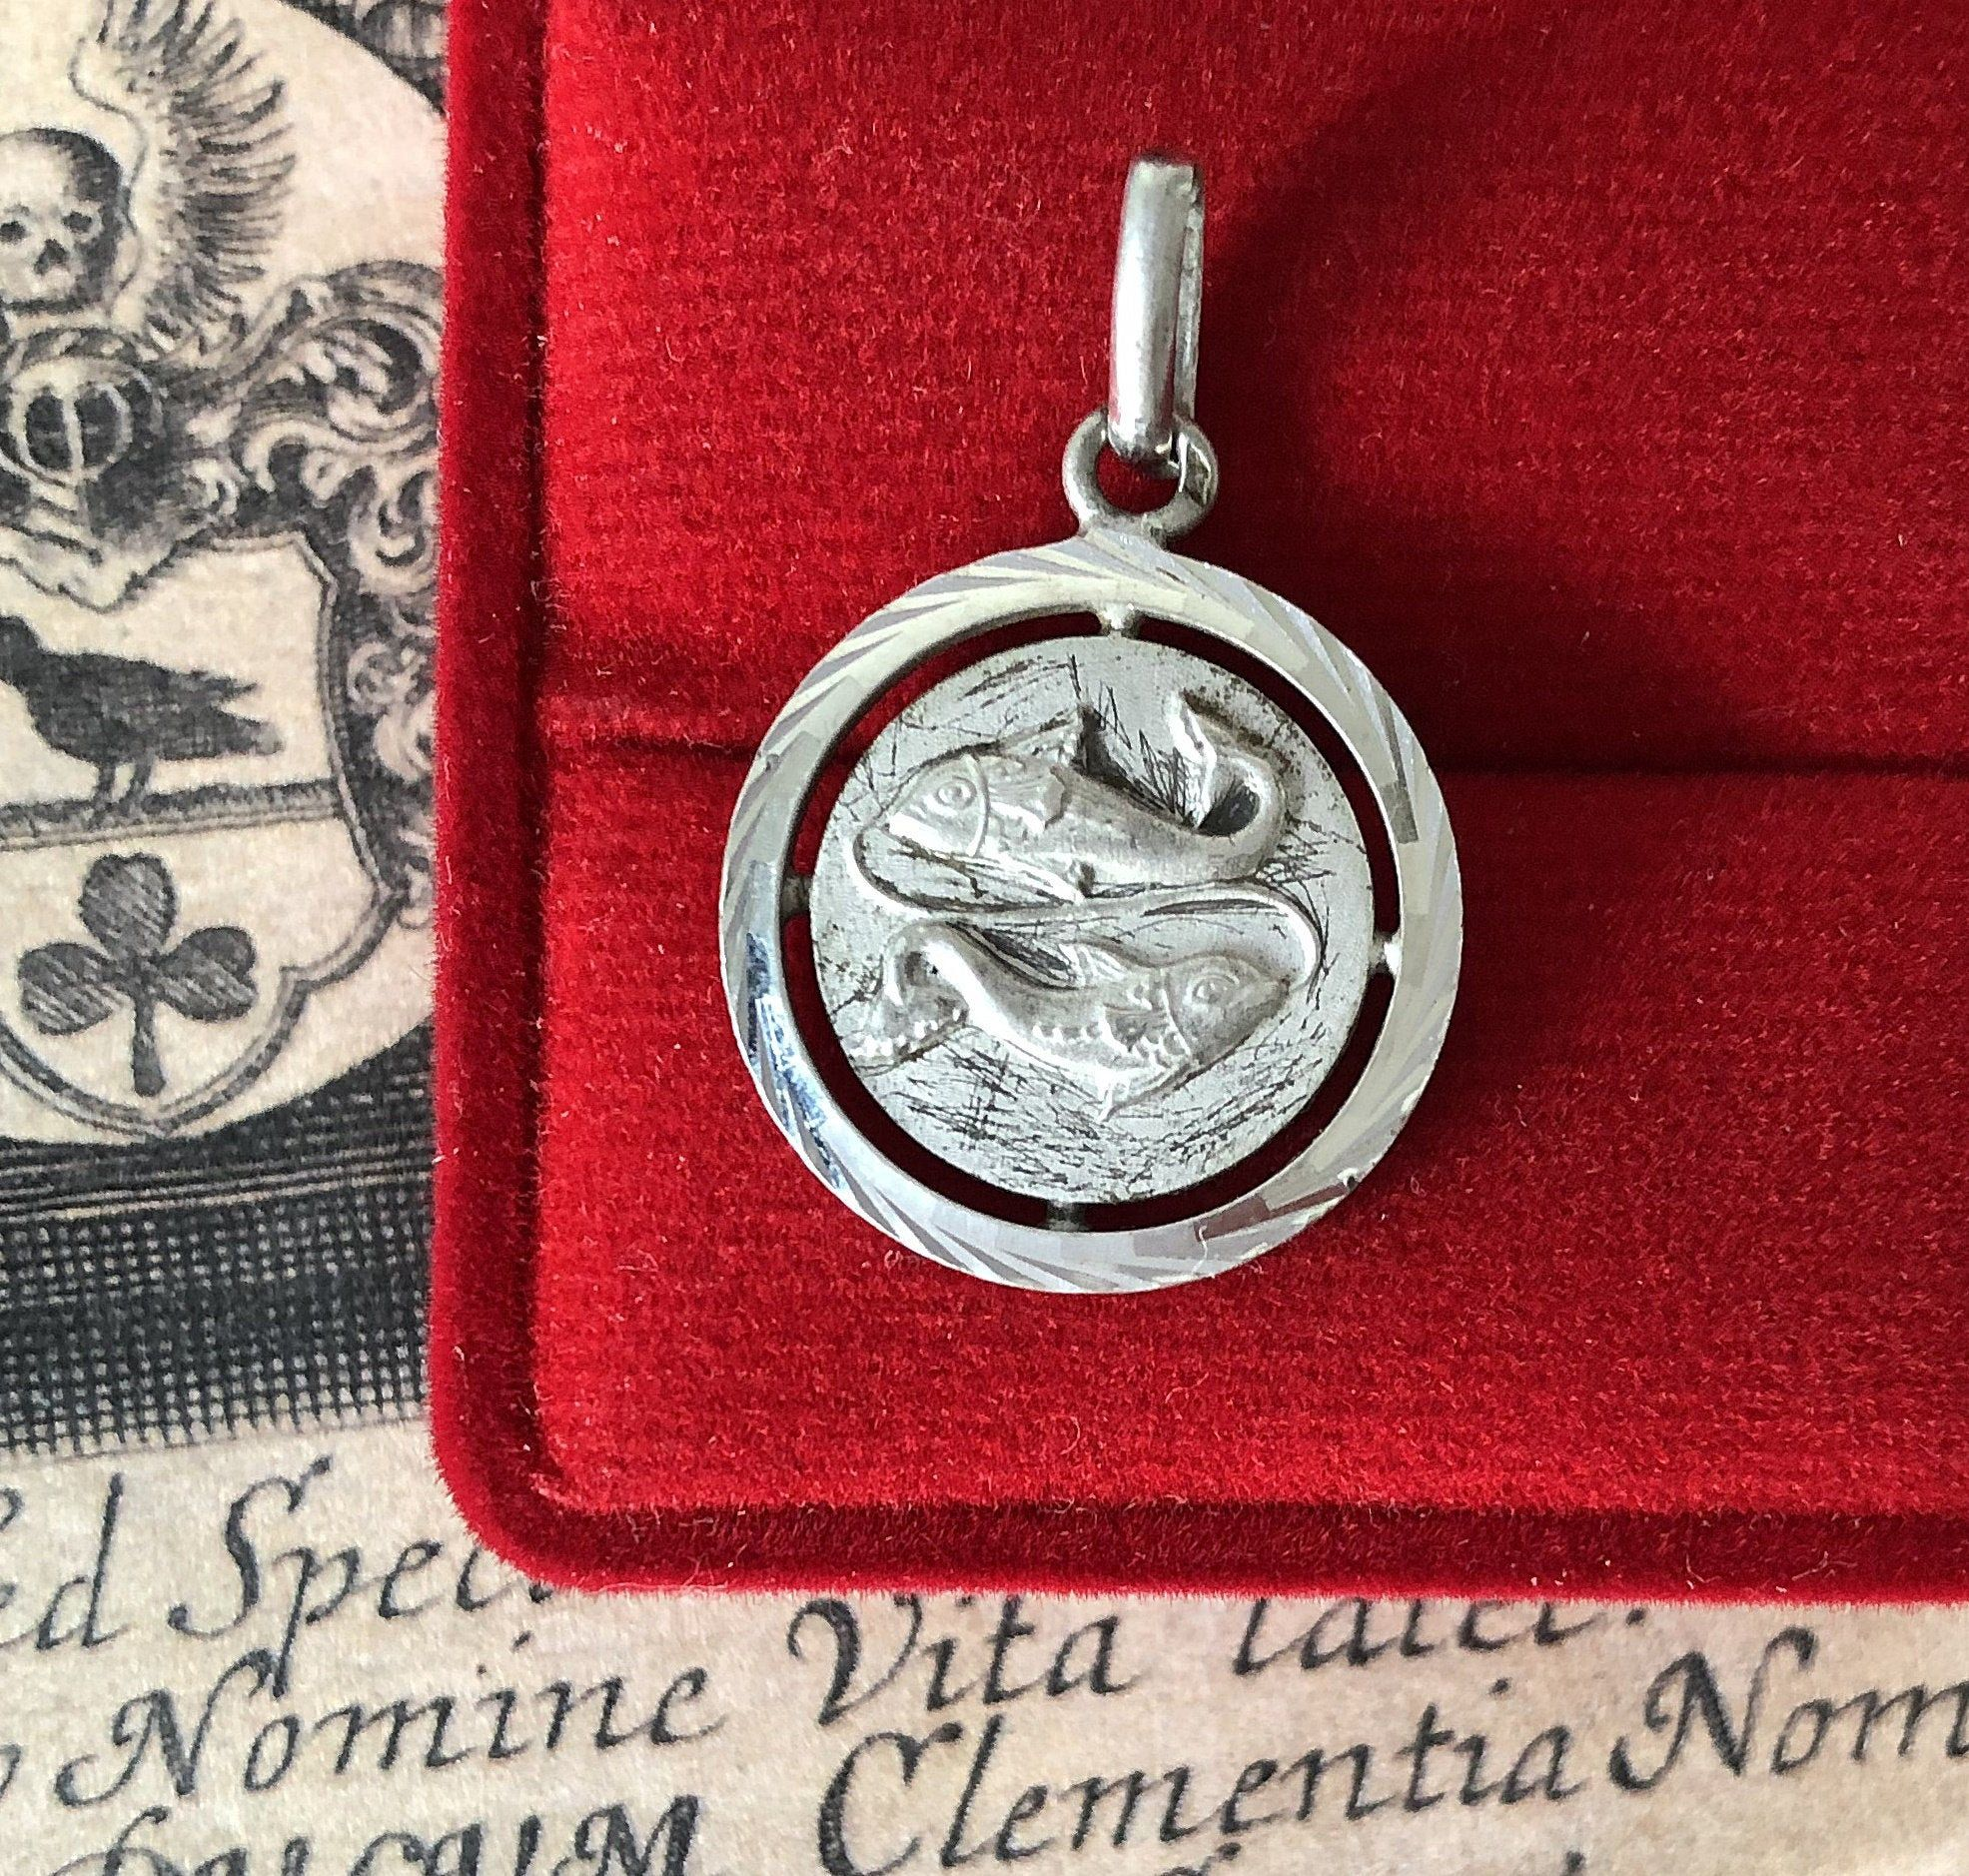 French Vintage Sterling Silver During Astrological Zodiac Sign Virgo